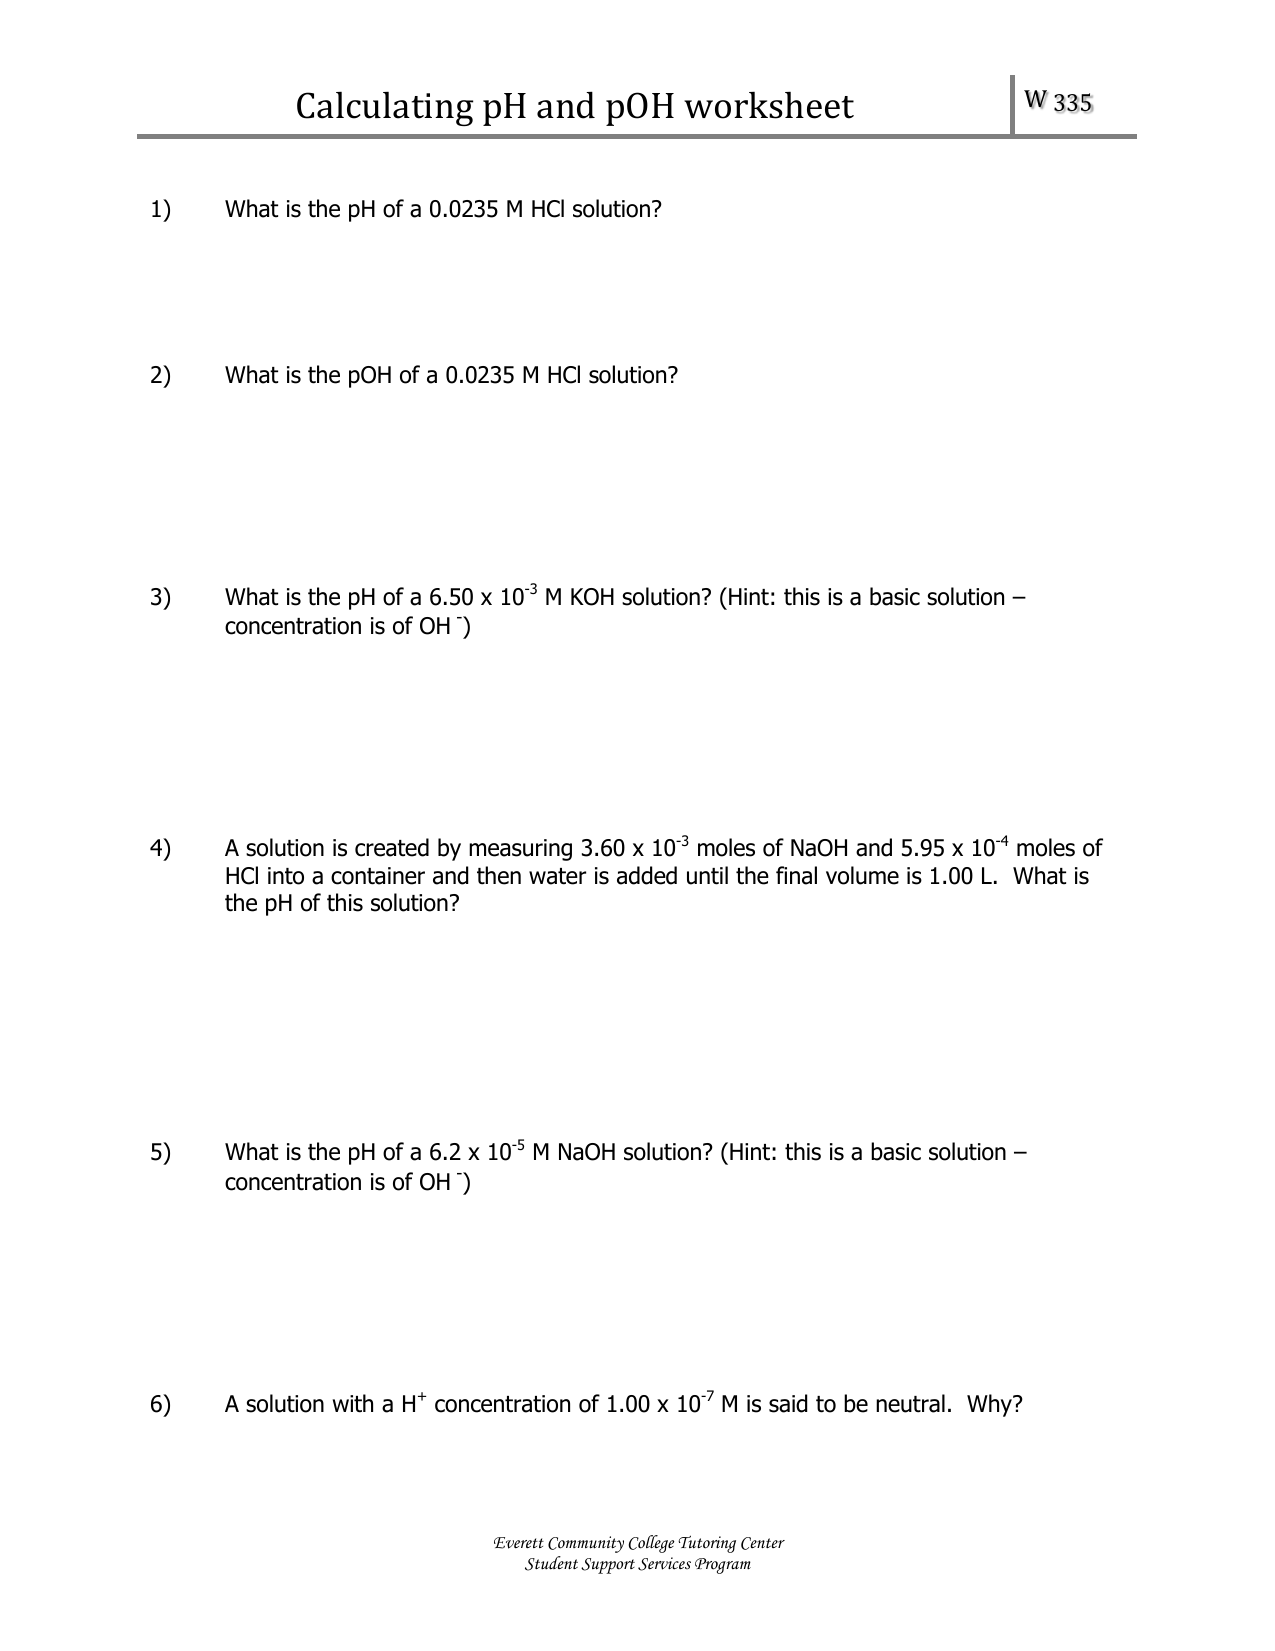 Calculating Ph And Poh Worksheet 2